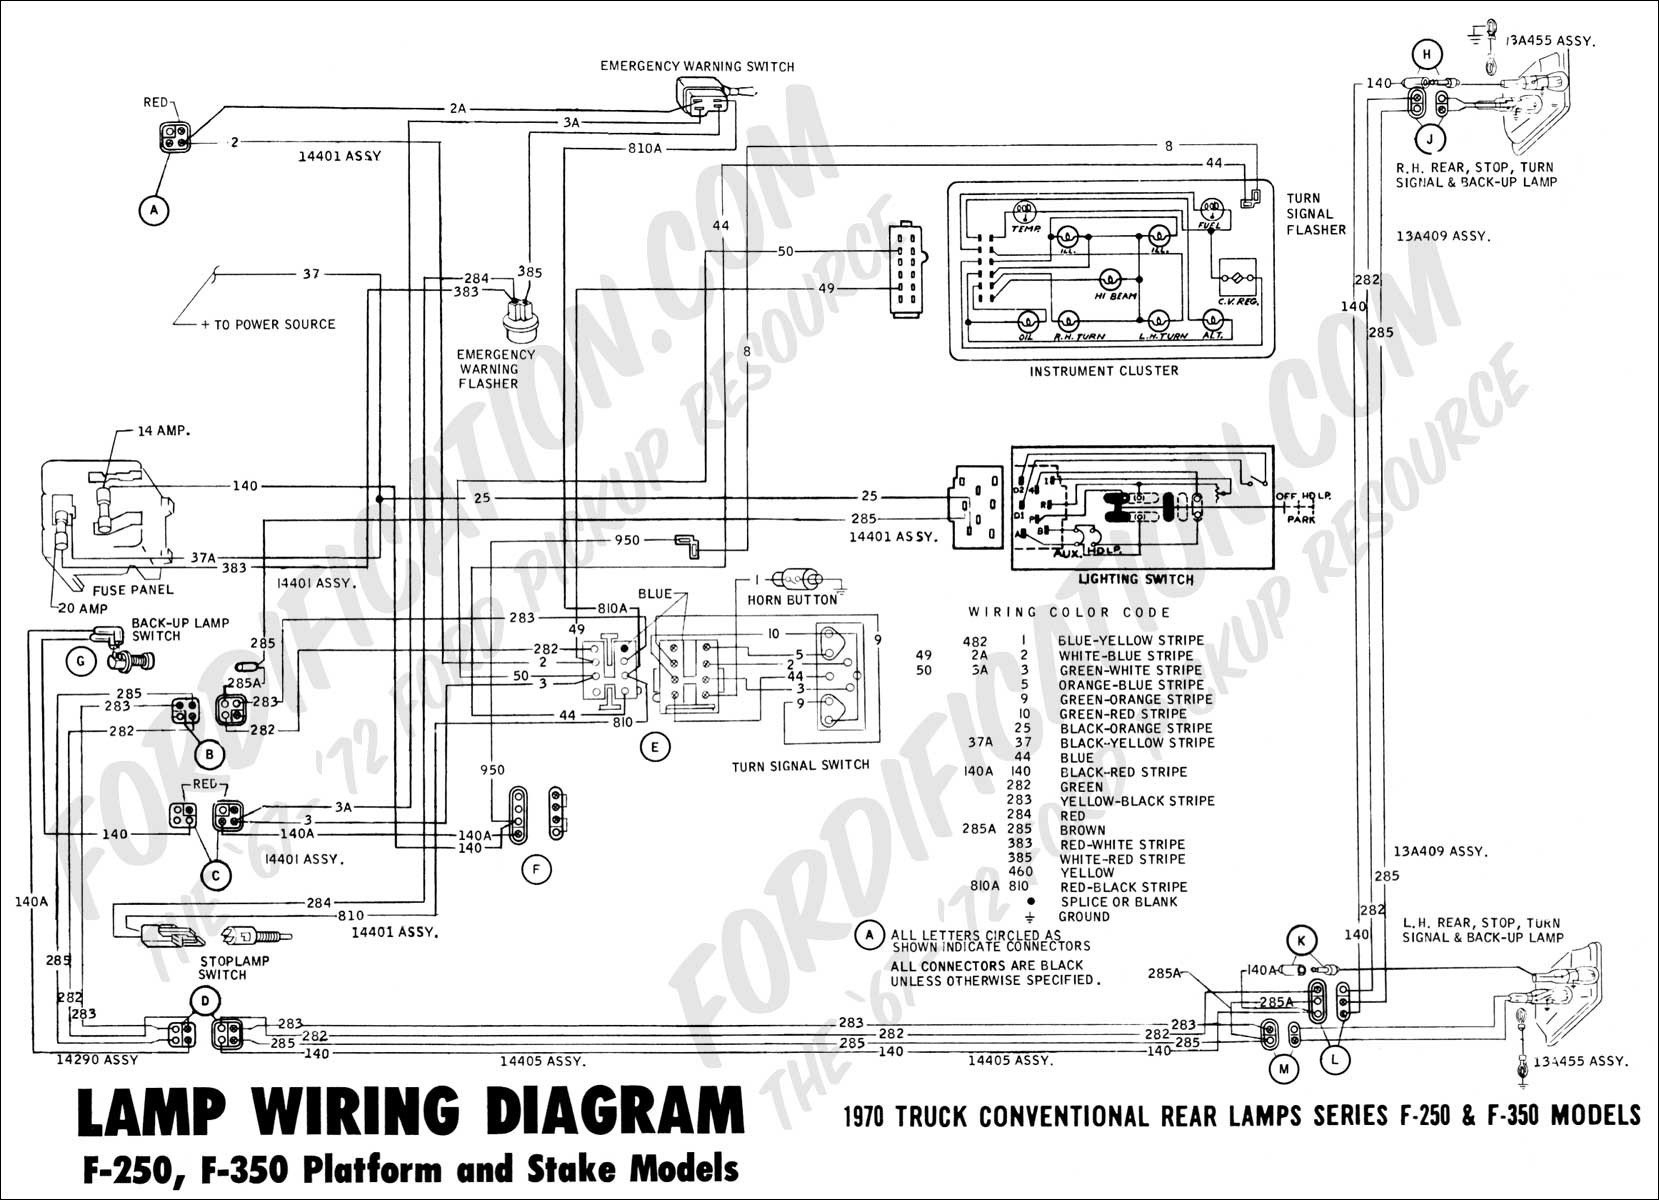 2008 Ford F 150 Truck Tail Light Wiring Content Resource Of 2010 Mustang Diagram Lights 2000 Headlight Colors Online Schematics Rh Delvato Co 2015 250 1999 Windstar